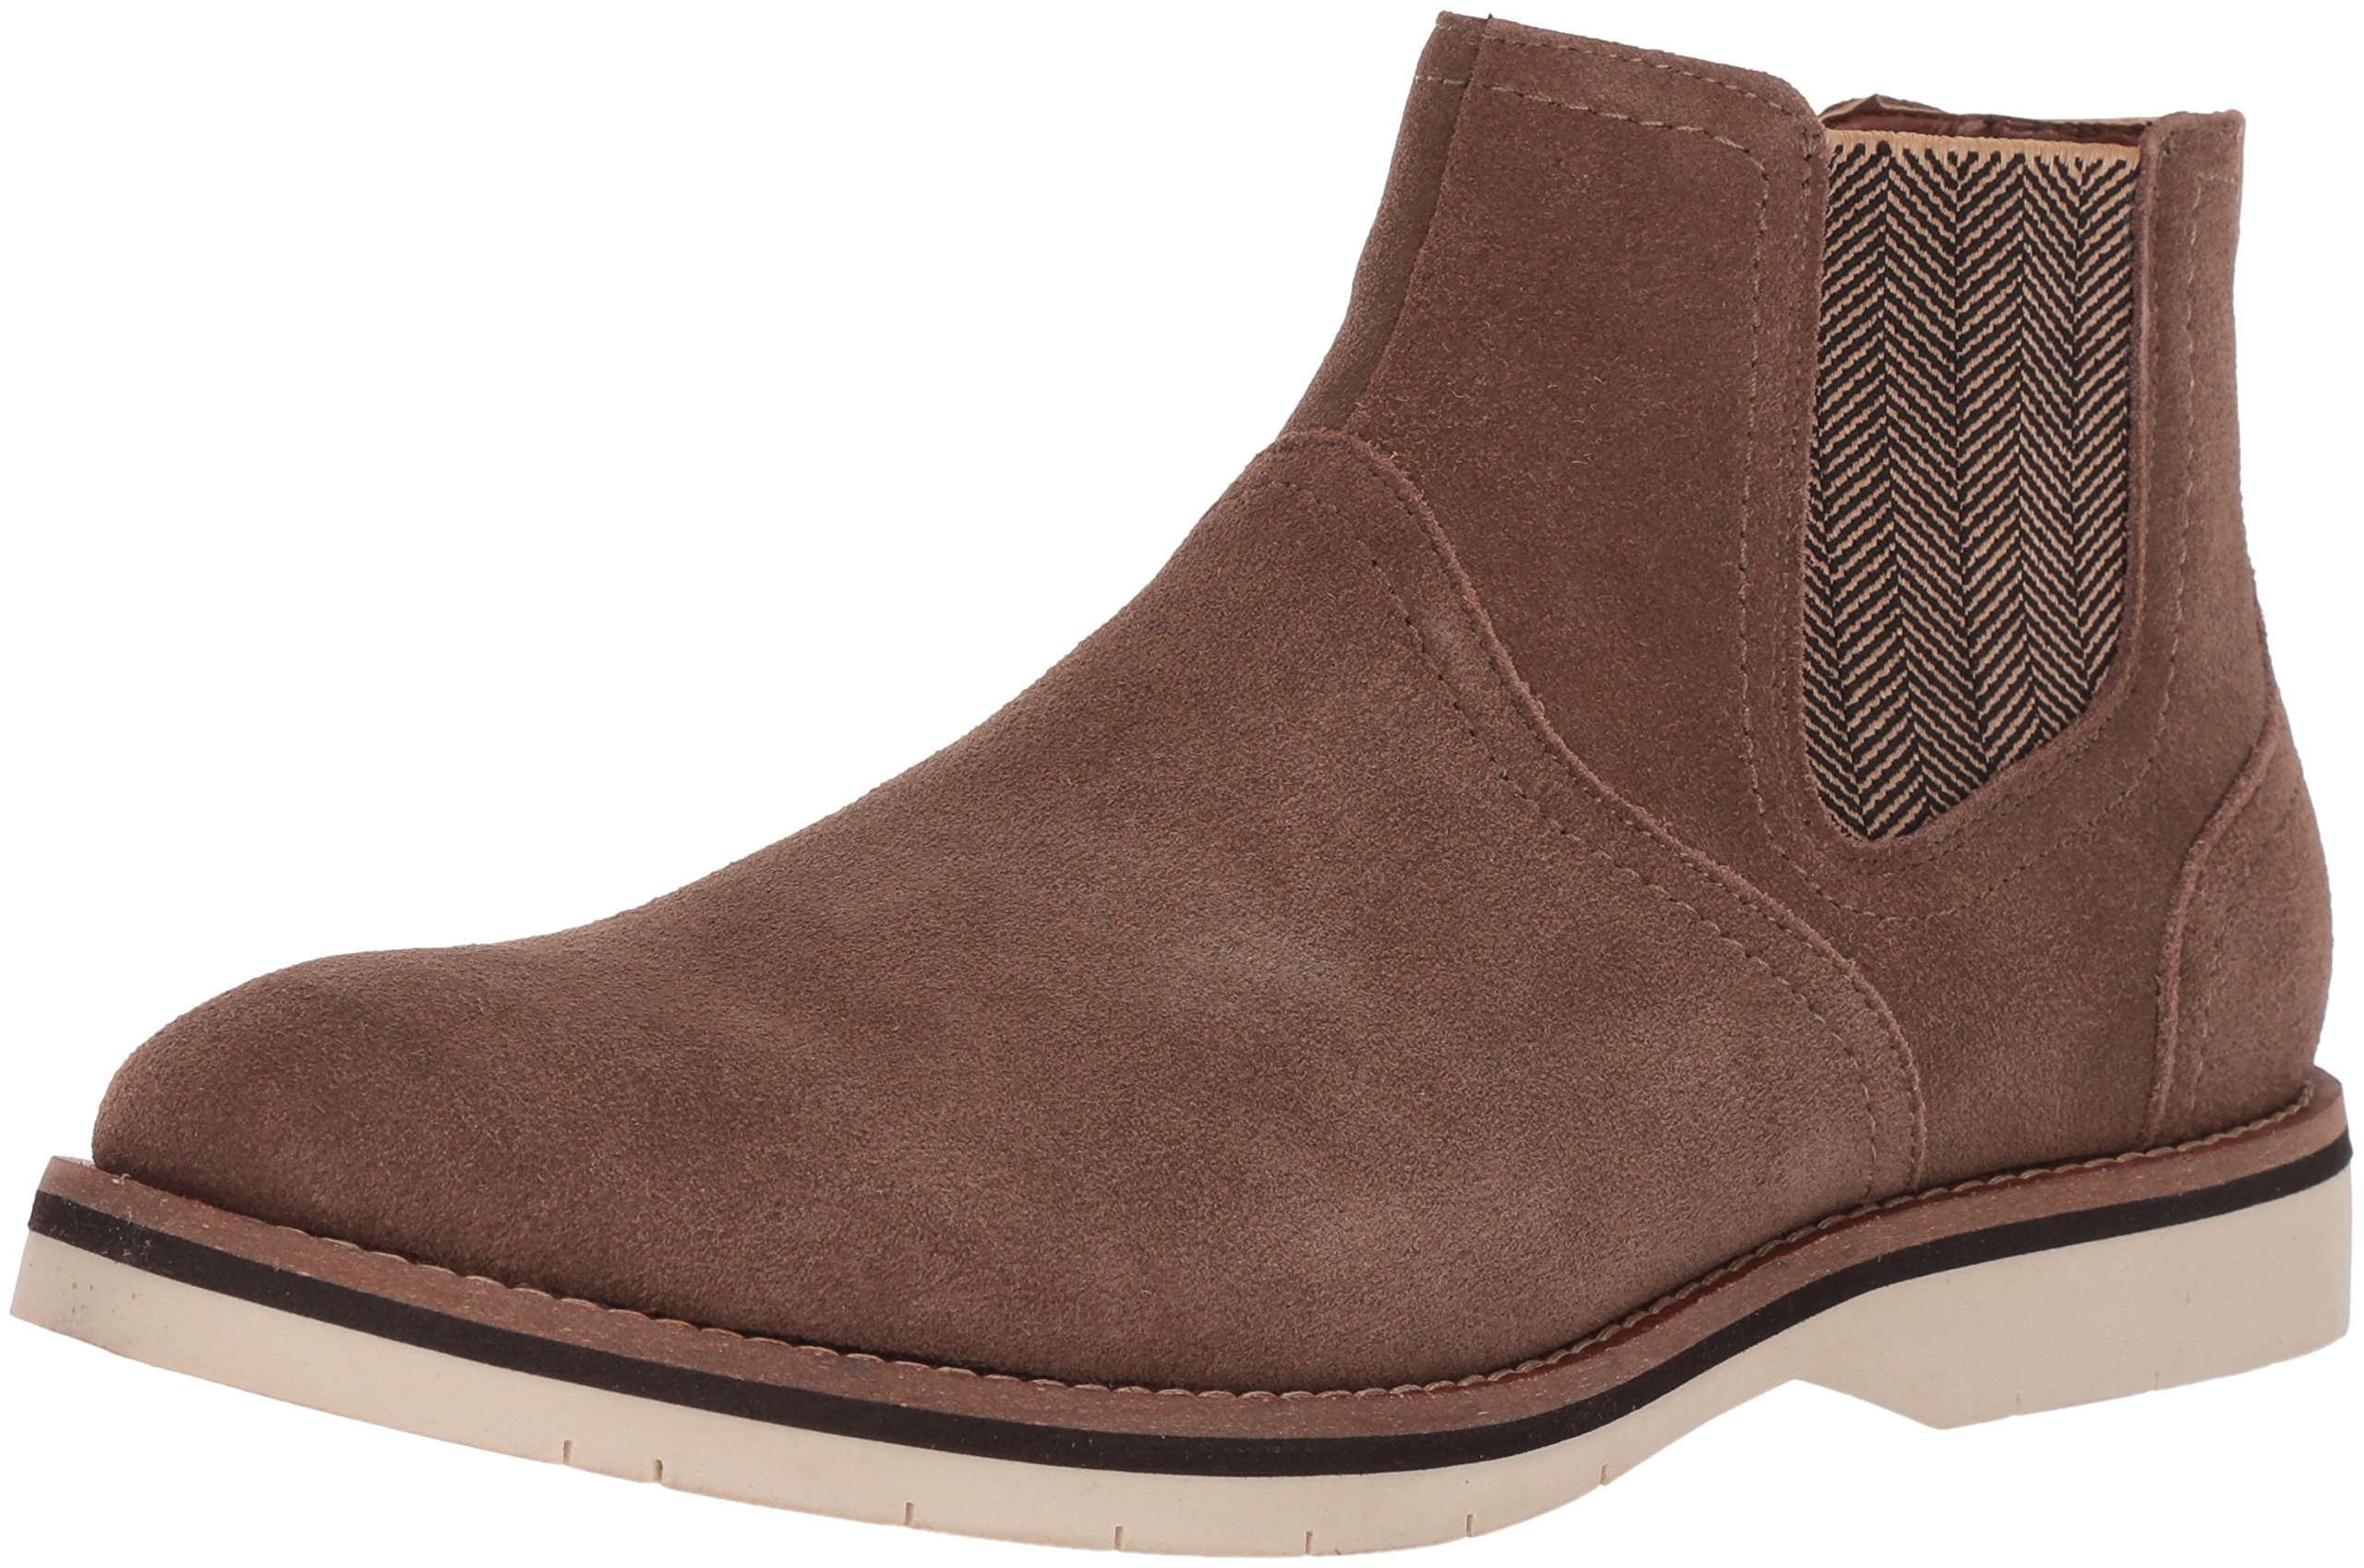 Steve Madden Men's Saine Chelsea Boot, Taupe Suede, 9.5 M US